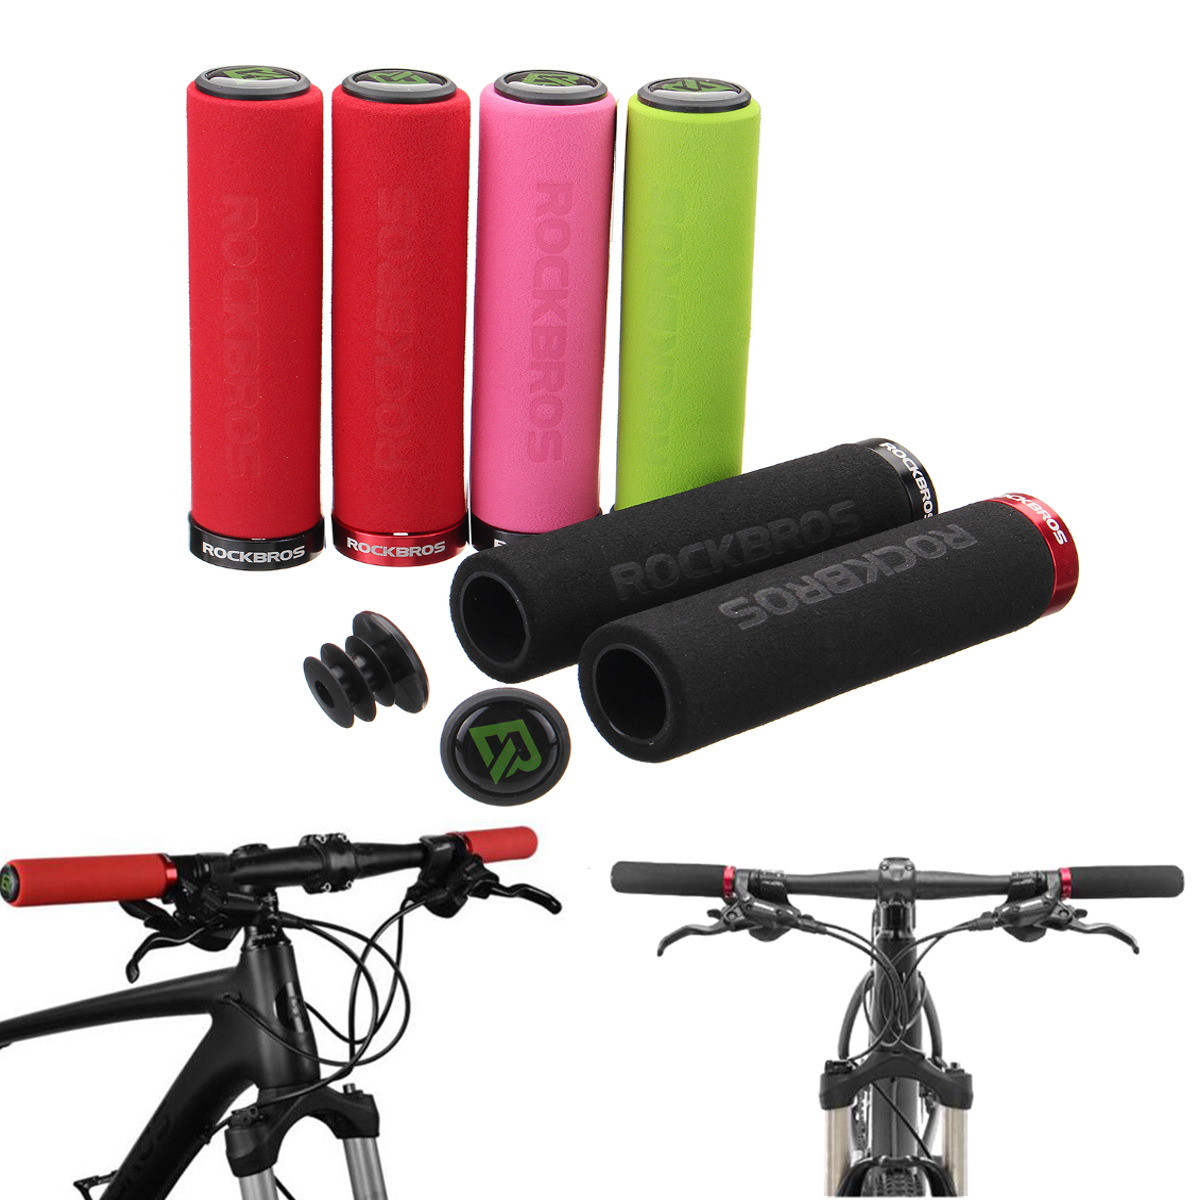 RockBros 1 Pair Bike Handlebar Grips Bicycle MTB BMX Bi